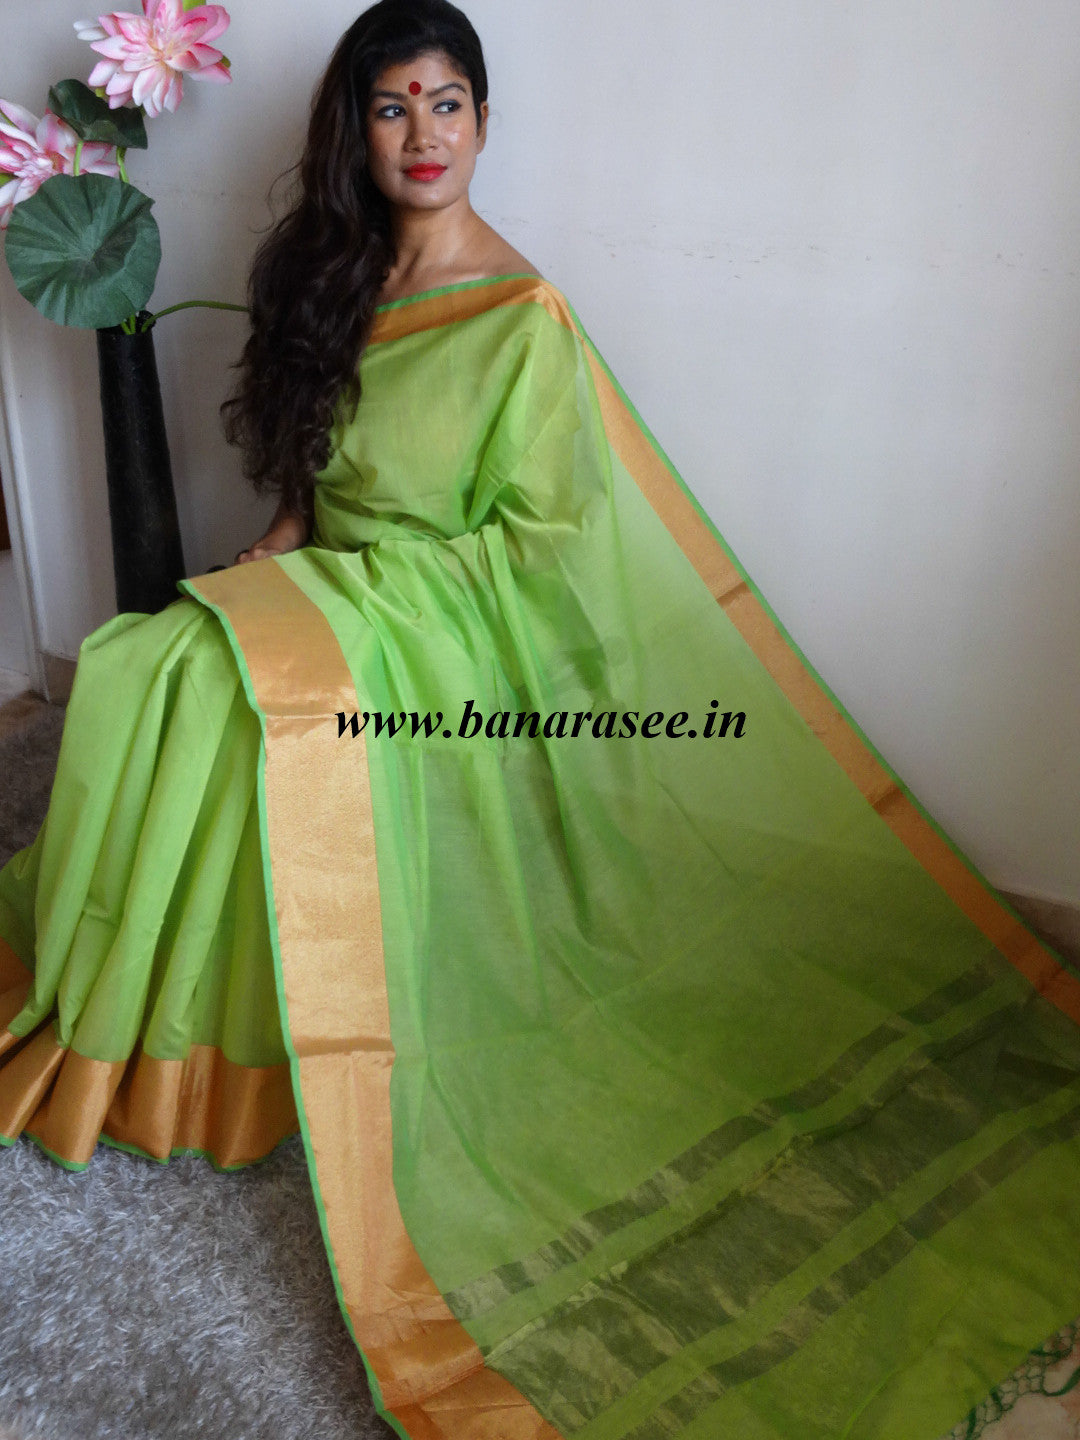 Banarasee/Banarasi Cotton Silk Saree With Zari Border-Light Green